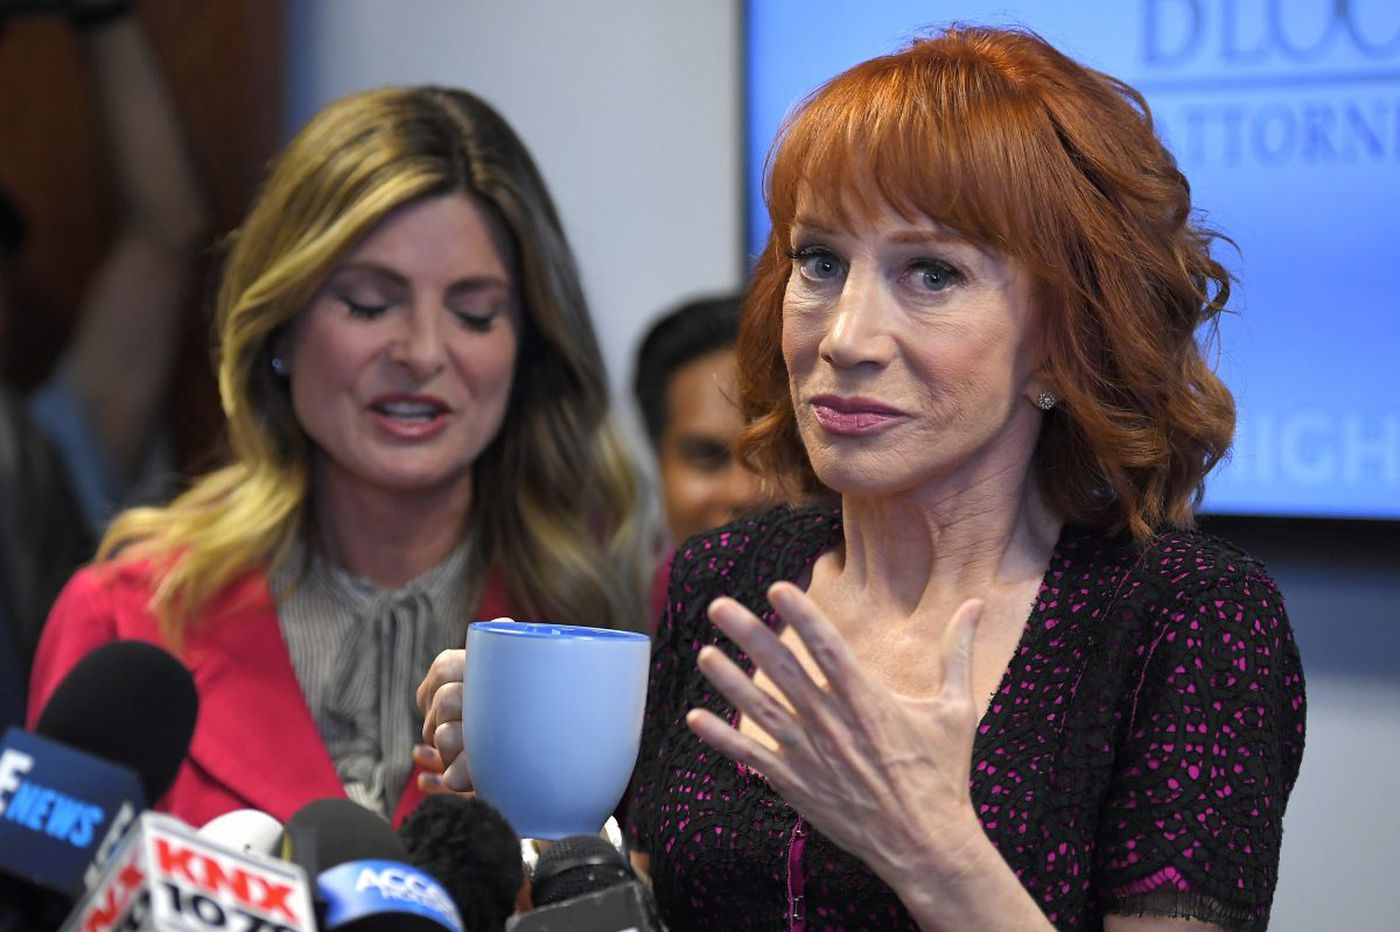 Former National Lampoon political editor: Don't call Kathy Griffin's Trump photos political satire